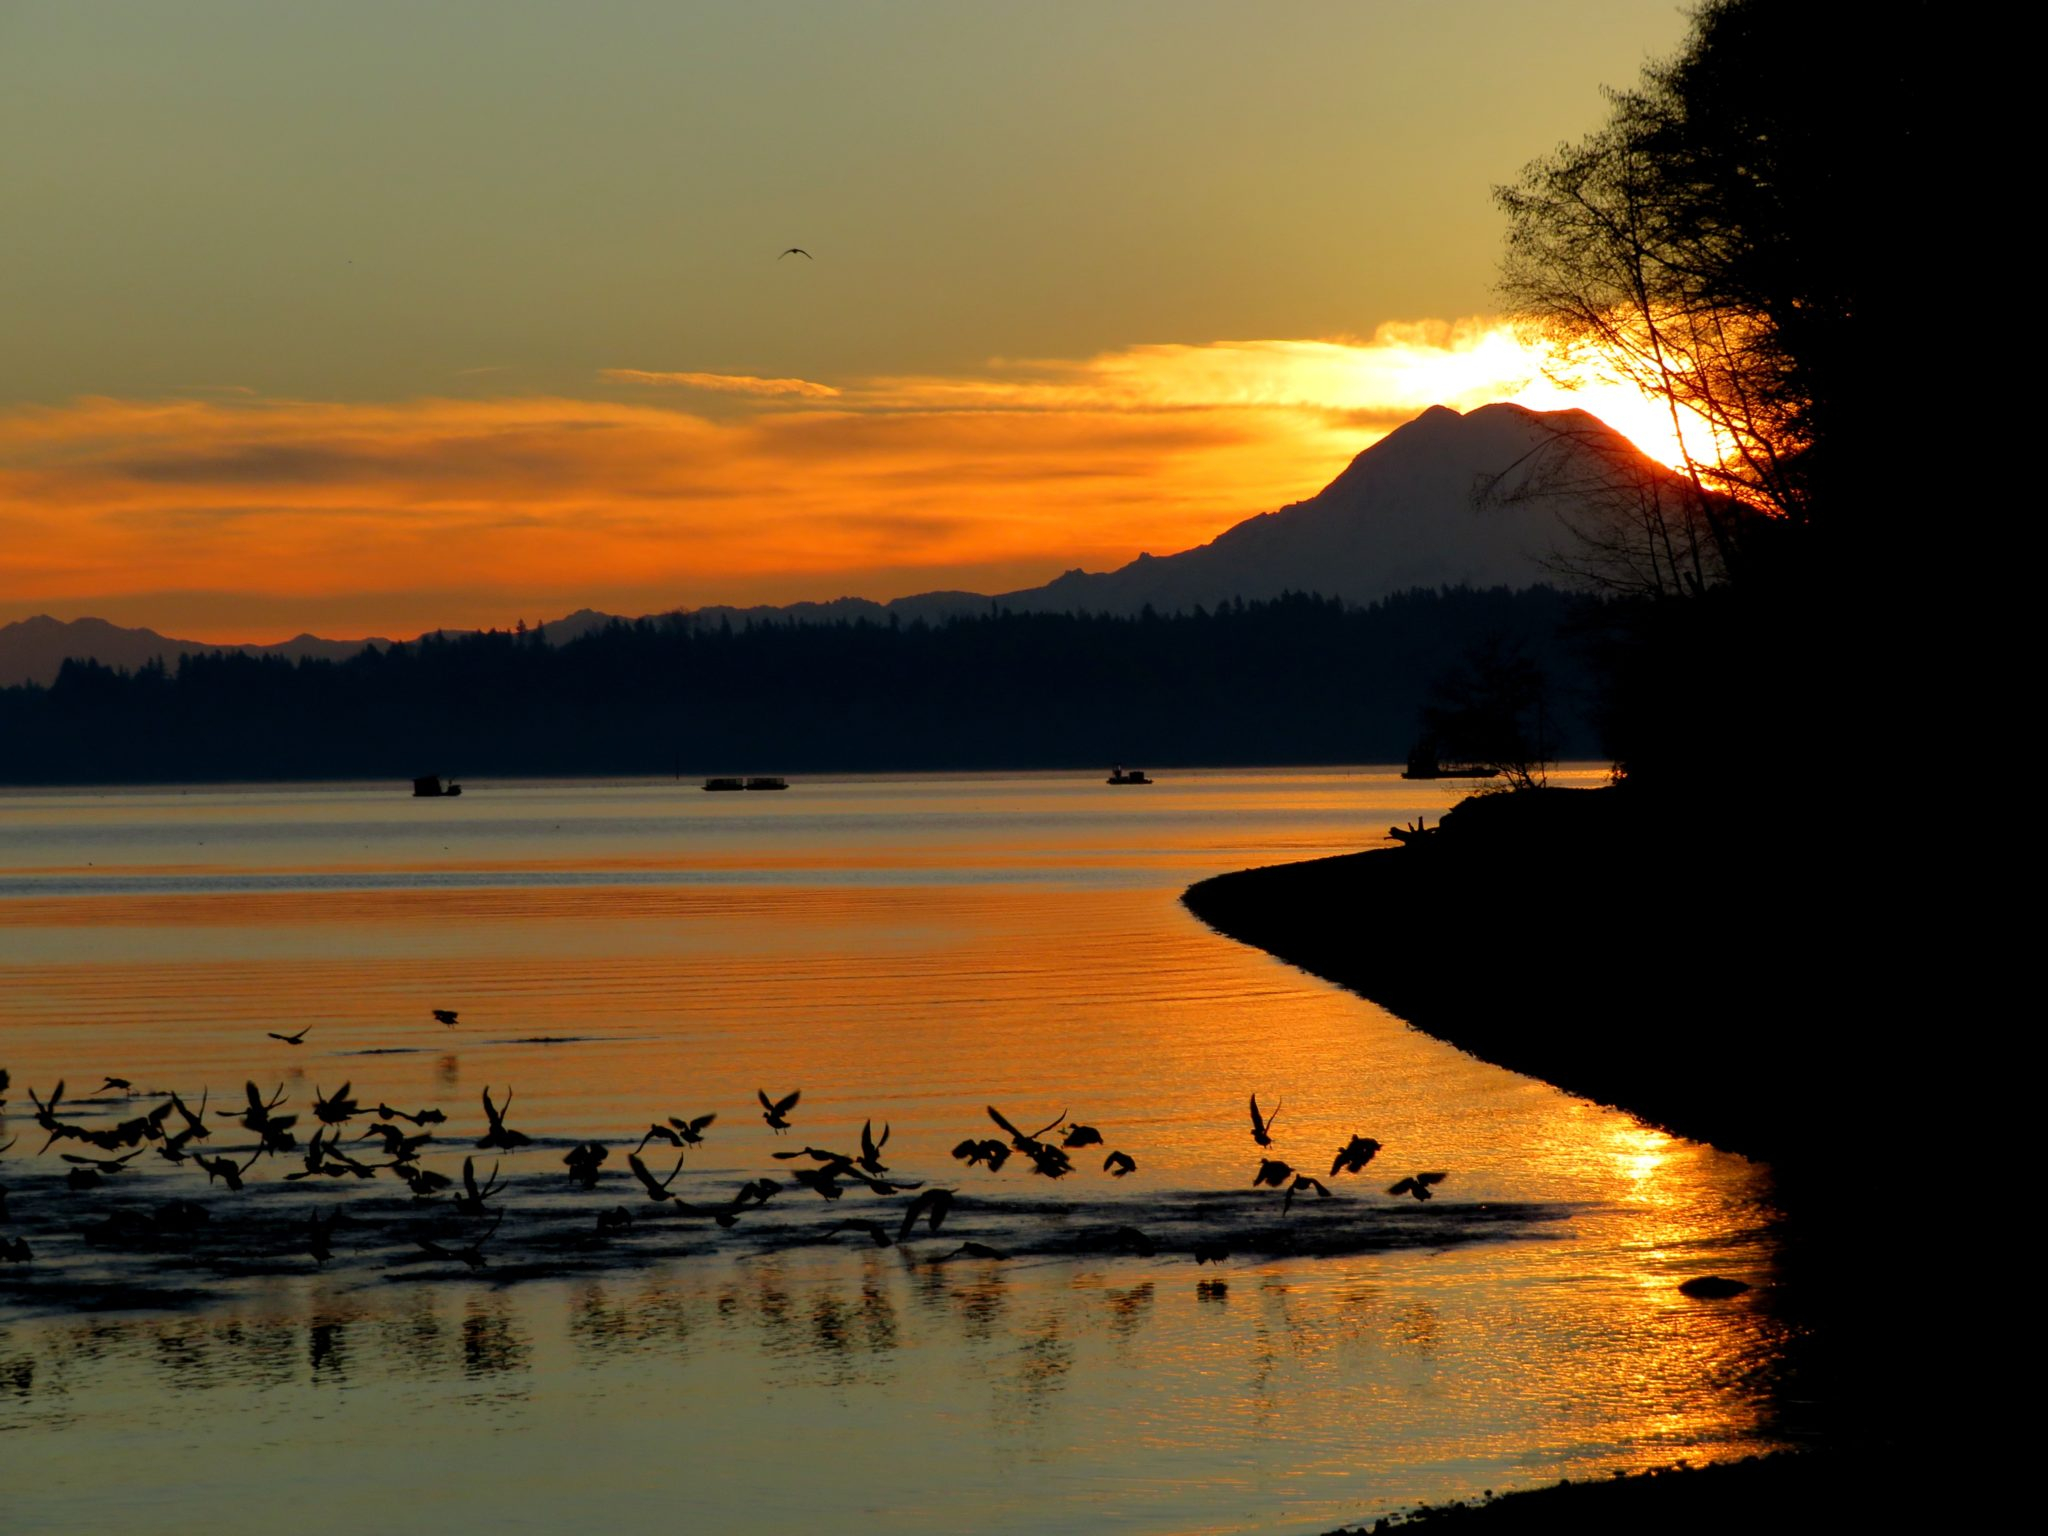 What To Do In Olympia This President's Day Weekend: Feb. 16 With Regard To What Time Is Sunset In Zip Code 98446